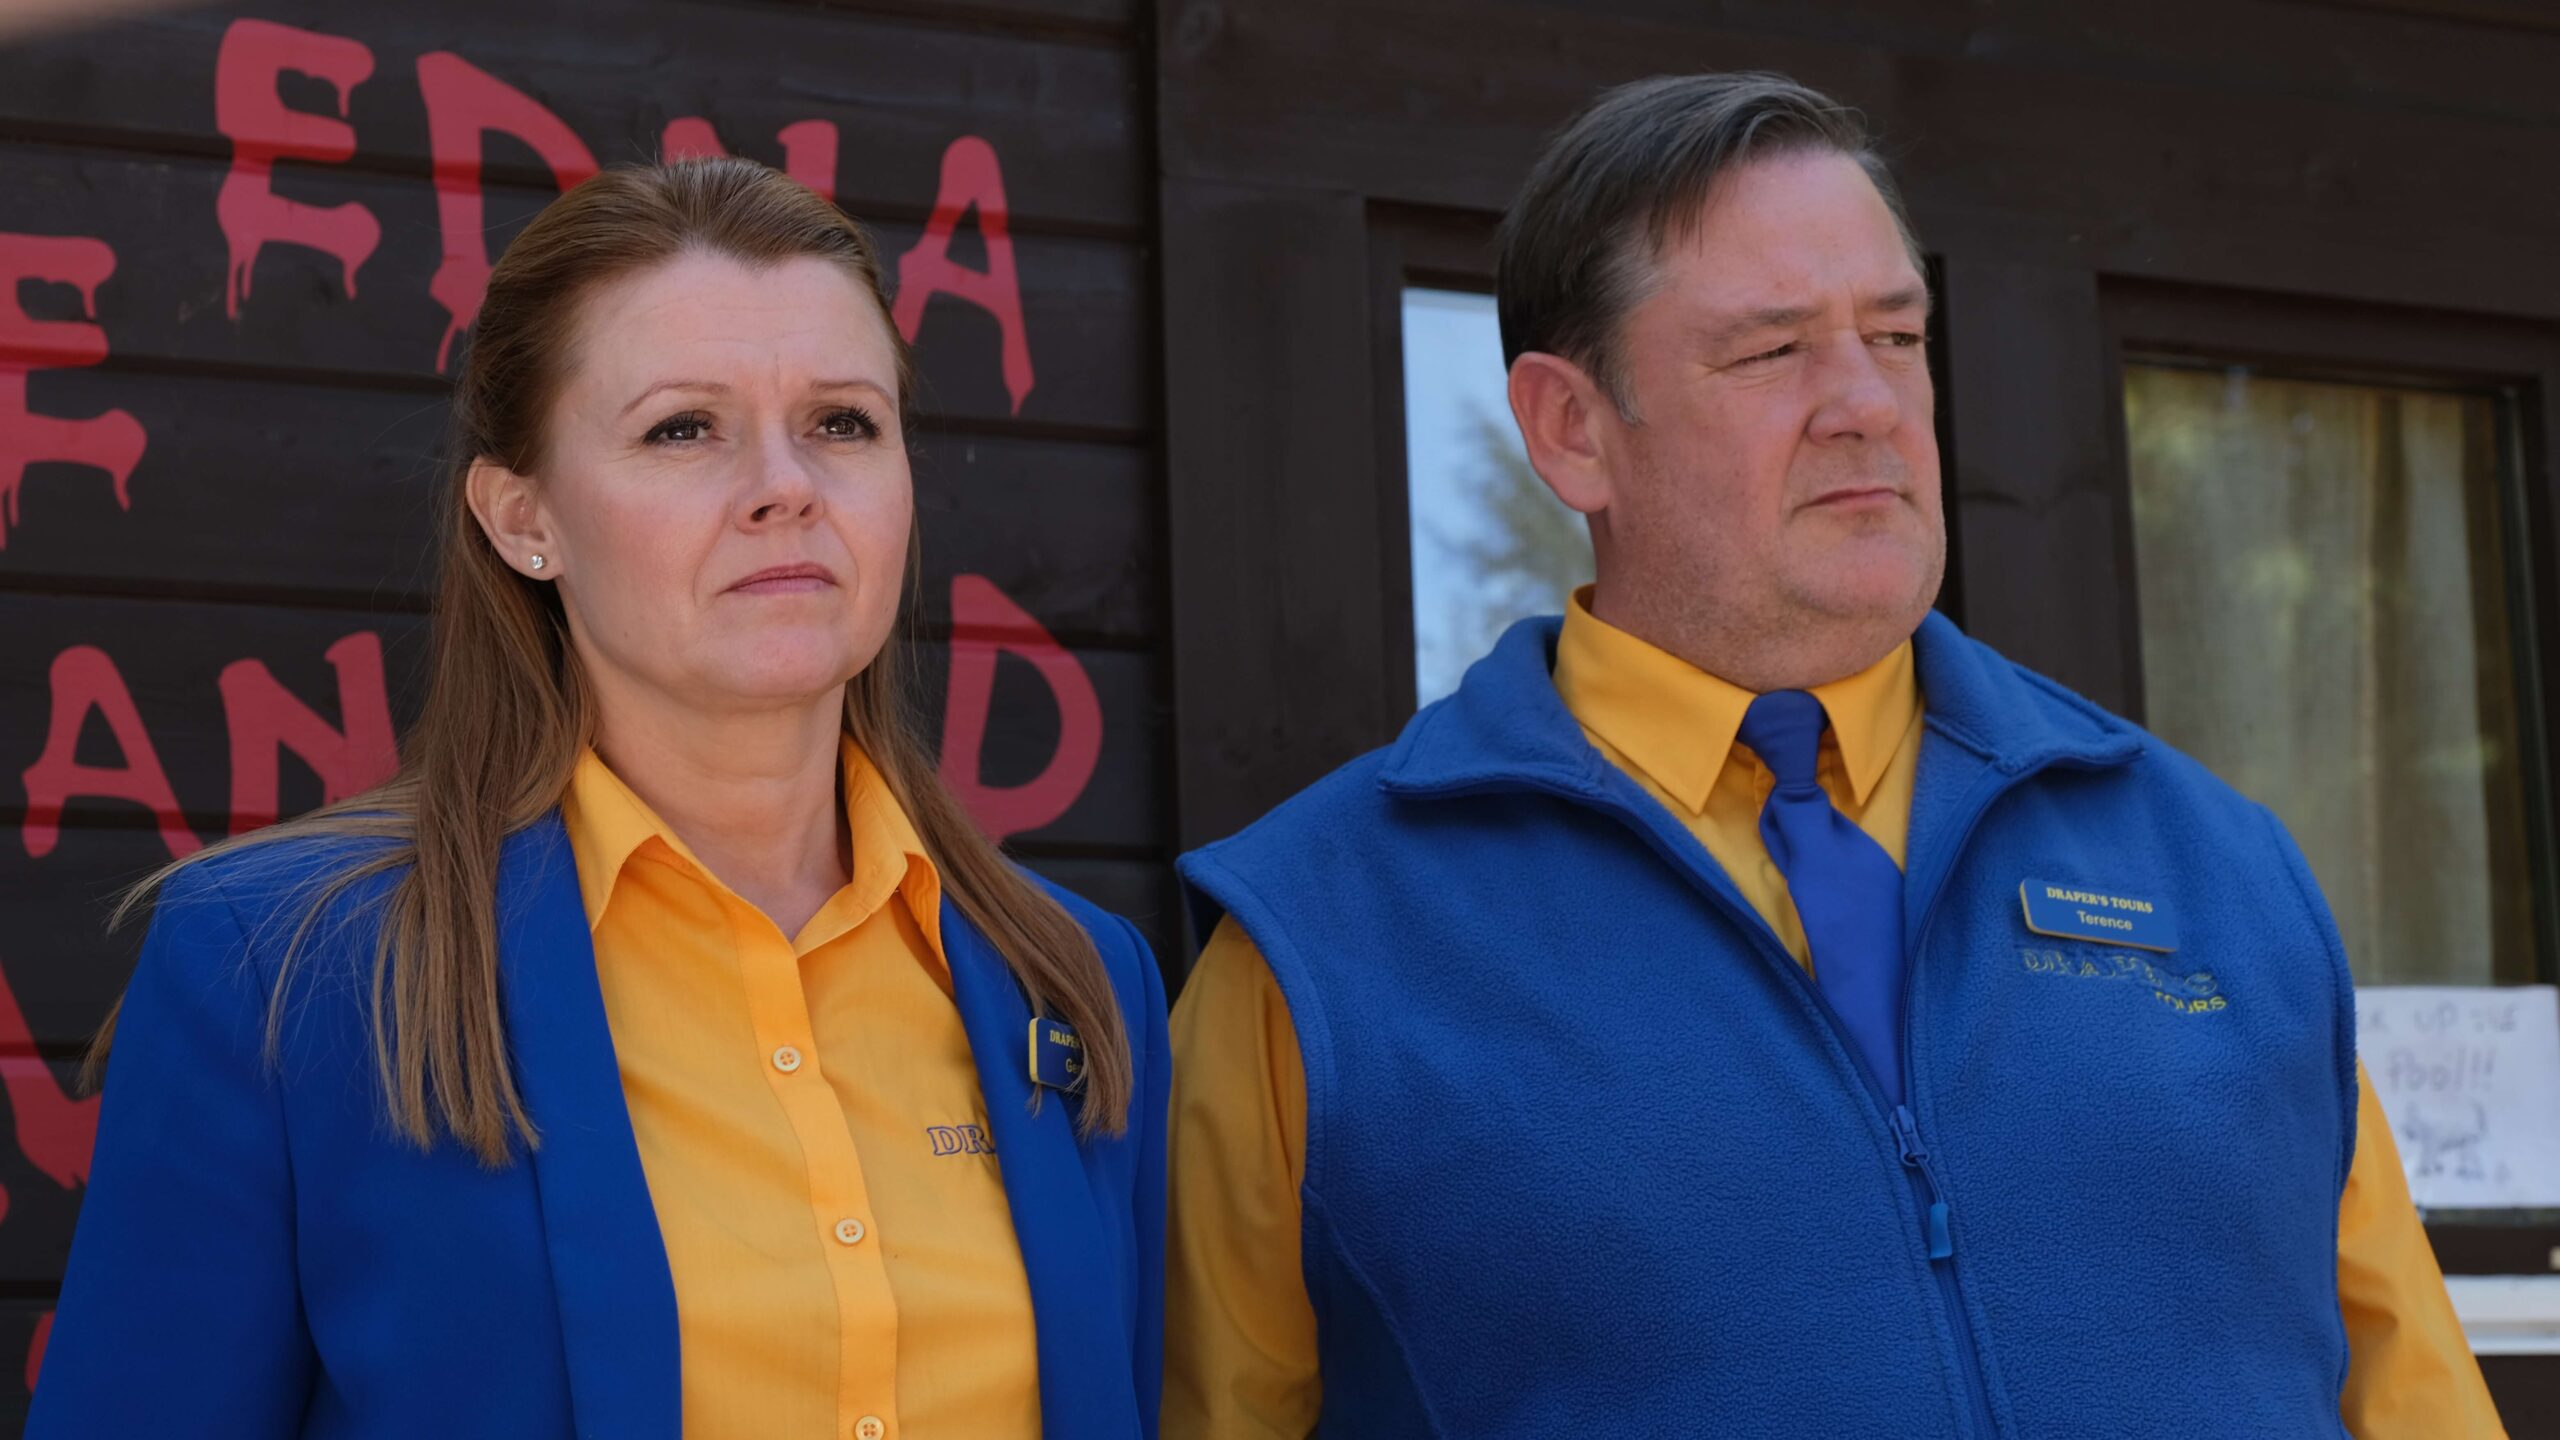 Gold orders new Sian Gibson, Johnny Vegas comedy from Shiny Button